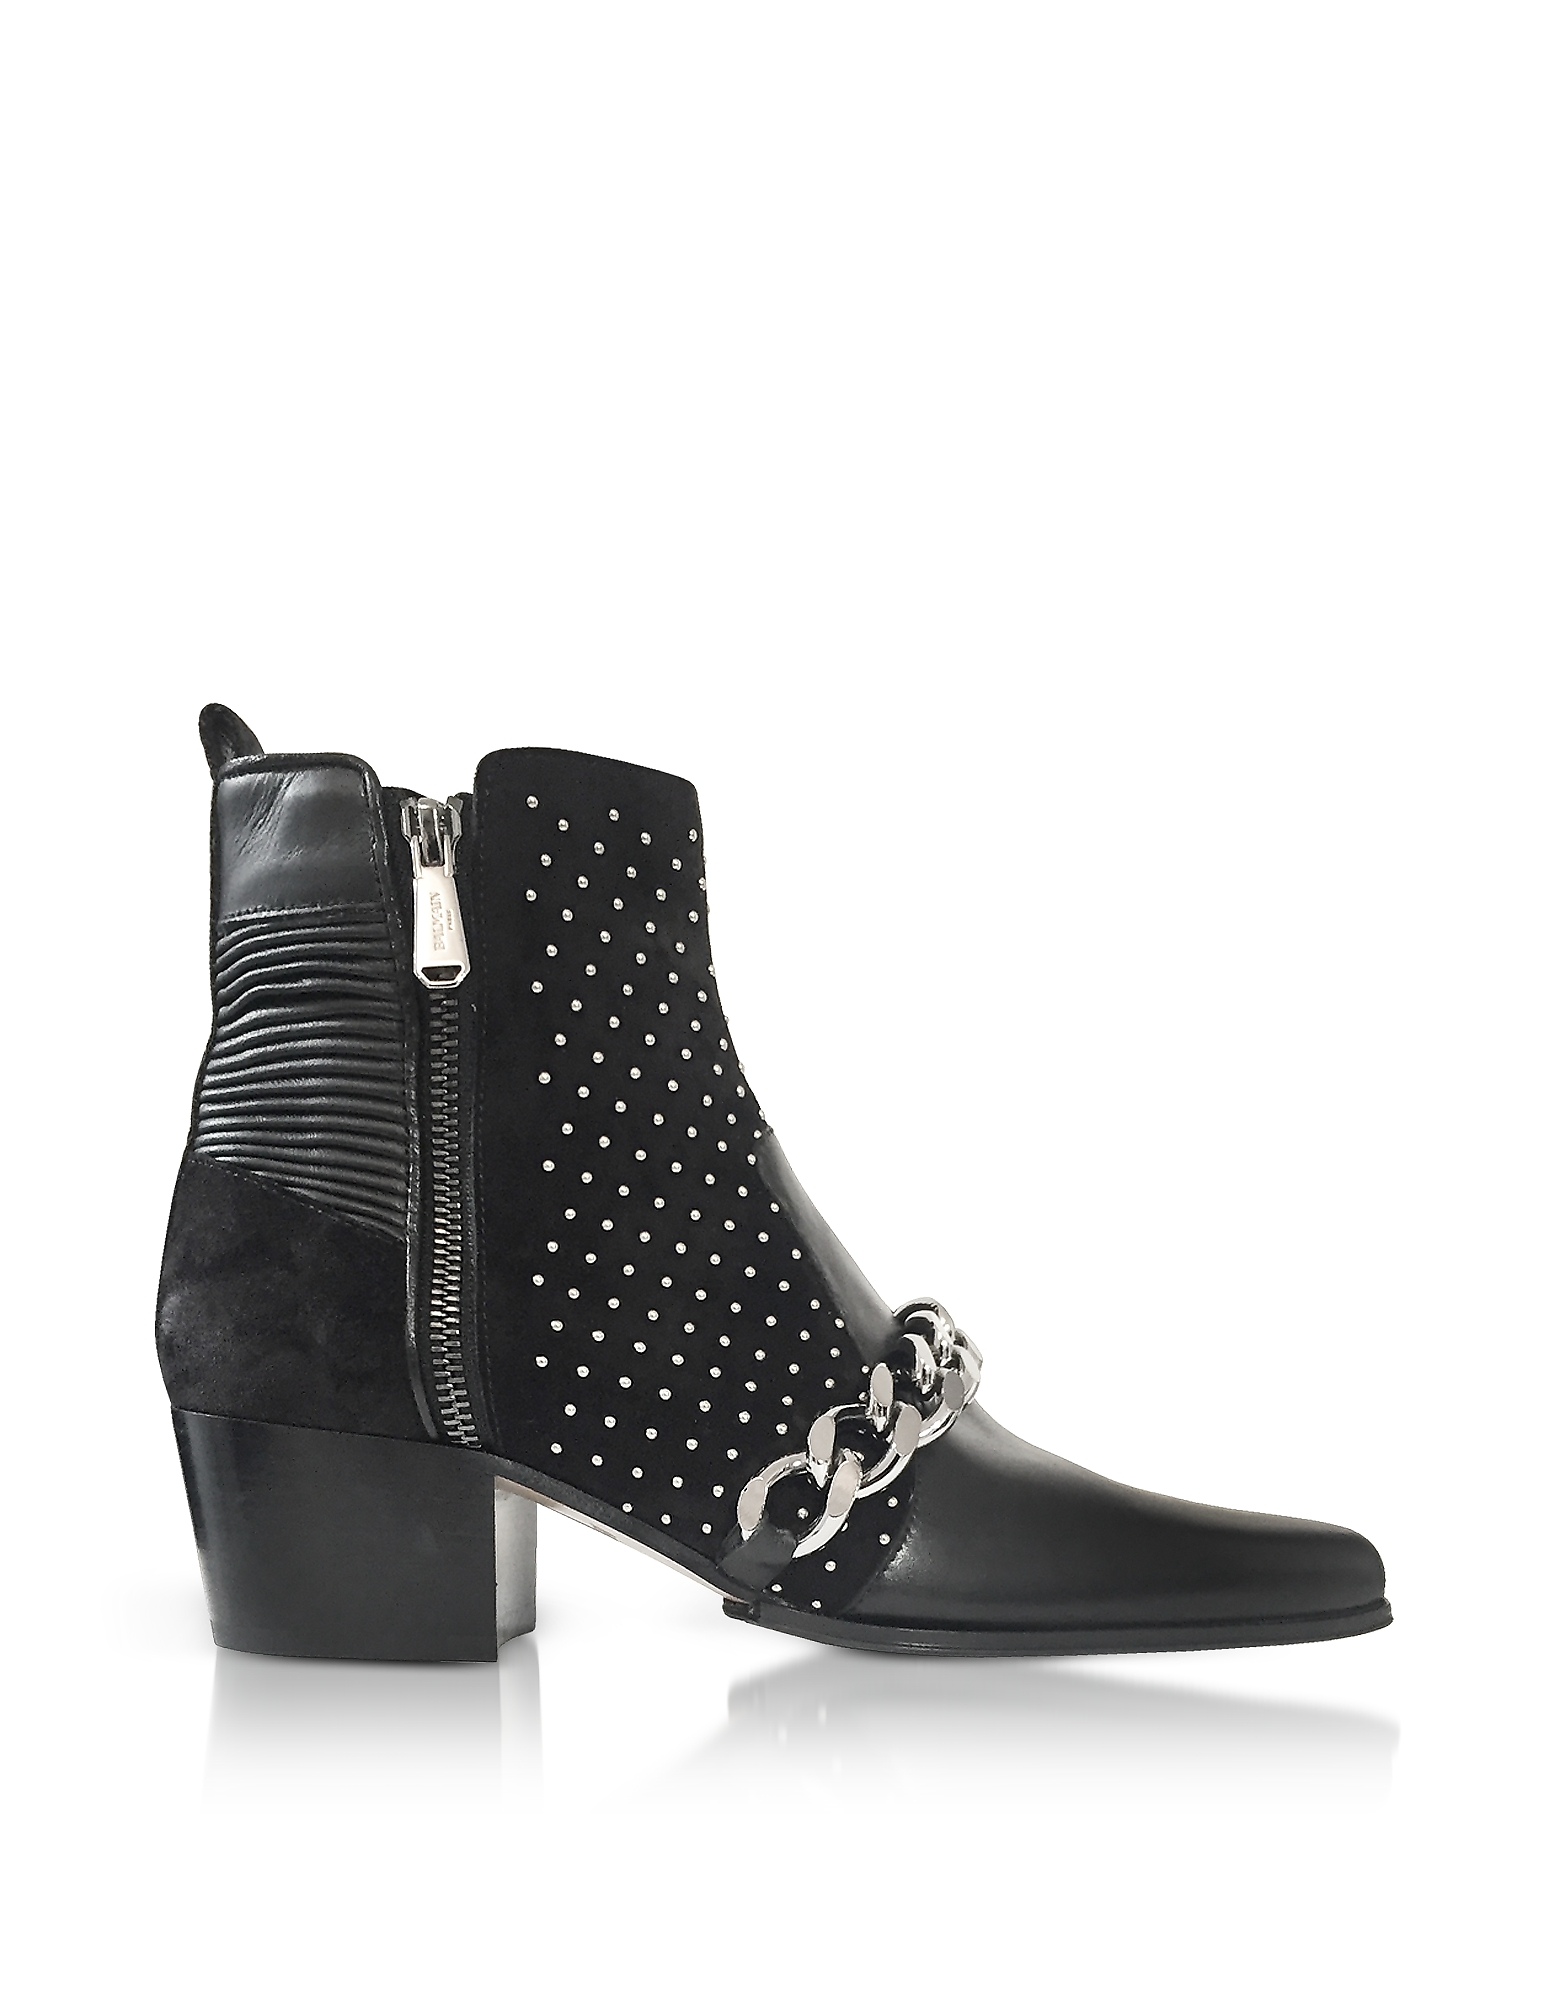 Balmain Shoes, Black Leather Ella Studs Boots